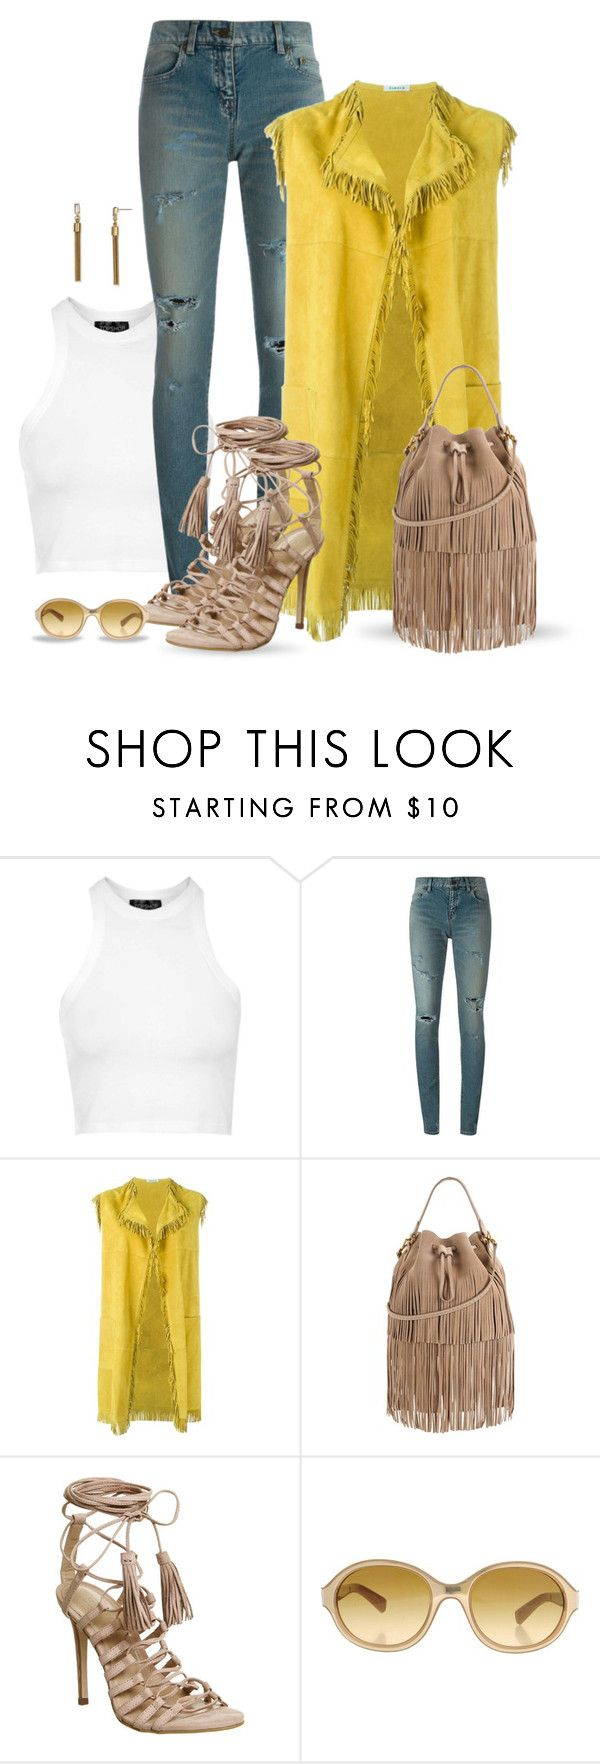 """""""Untitled #1206"""" by carla-palmisano-50 ❤ liked on Polyvore featuring Topshop, Yves Saint Laurent, P.A.R.O.S.H., Juicy Couture, Office, Giorgio Armani and Dylan Gray"""